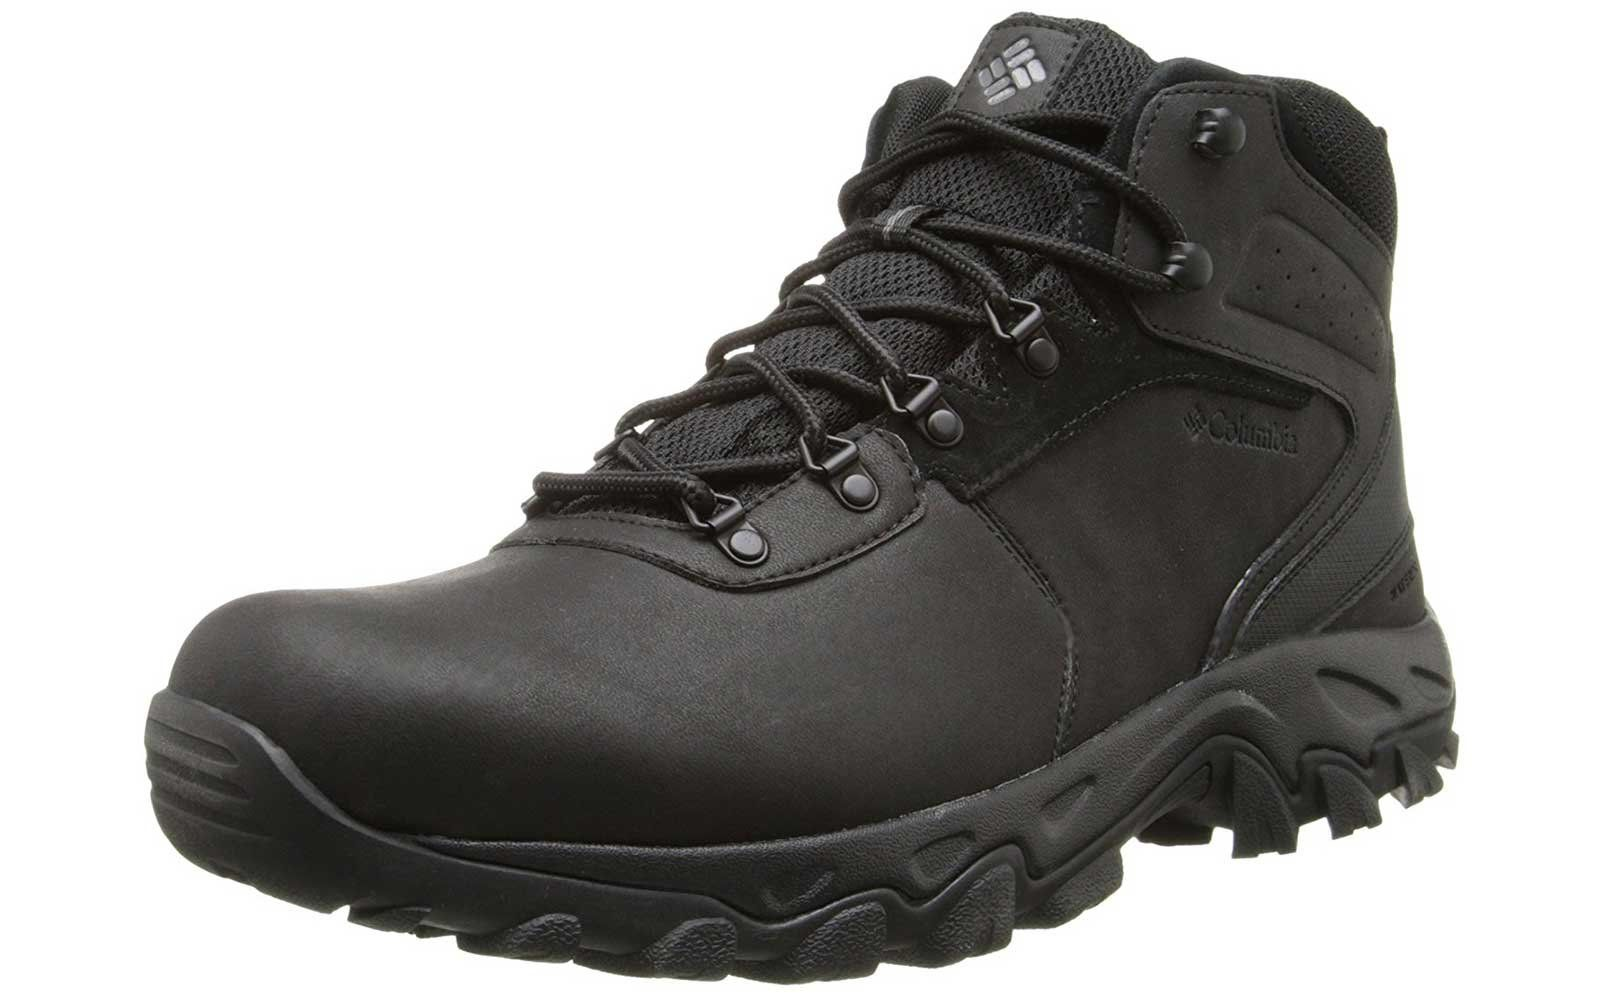 bac37a5eaa7 The 10 Best Hiking Shoes on Amazon | Stitching | Waterproof hiking ...